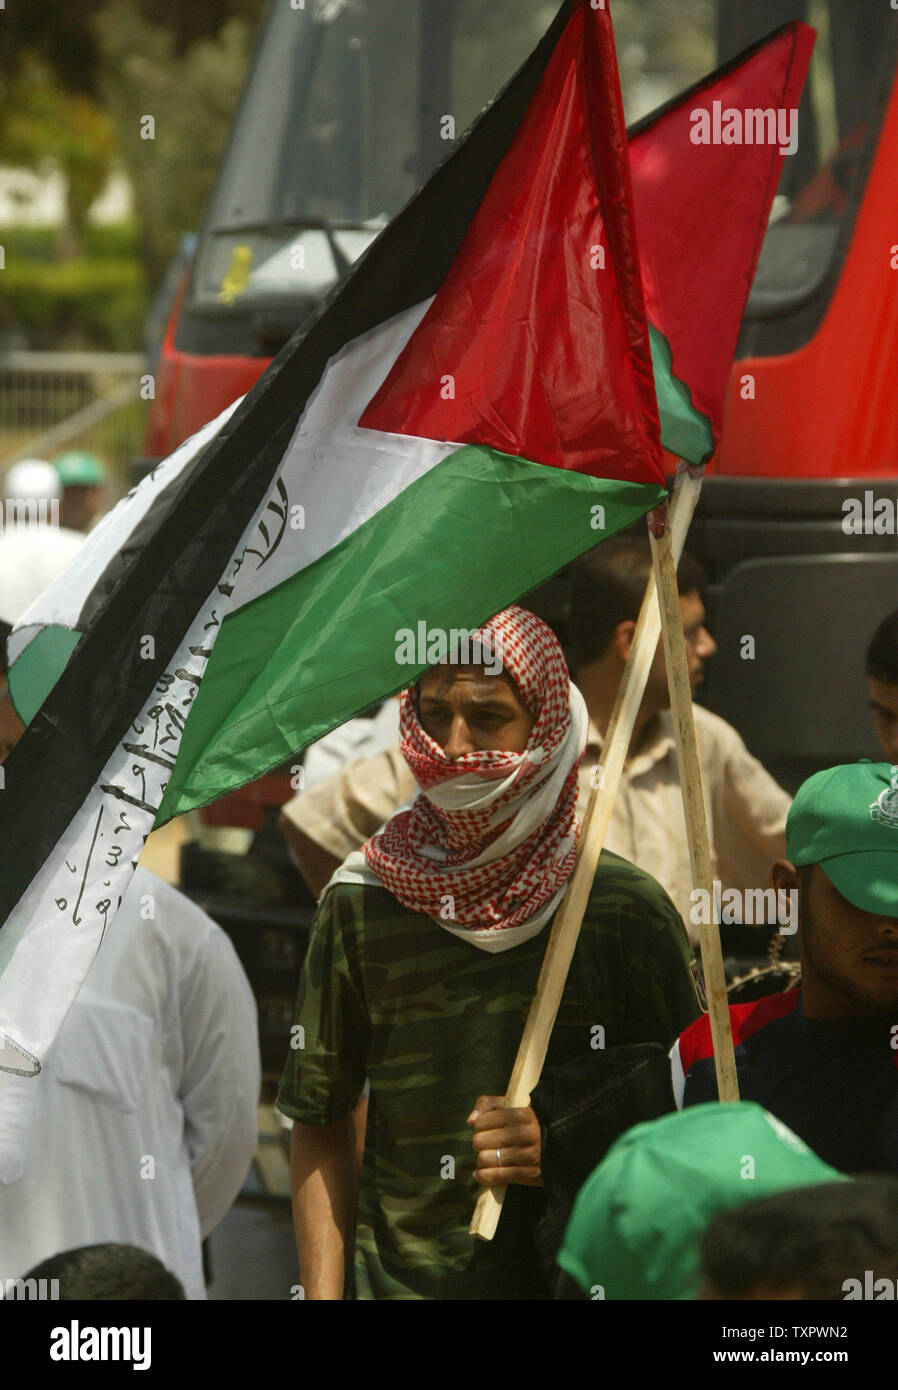 Palestinians participate in a demonstration called by Hamas to protest against the Israeli blockade at the border town of Rafah between Egypt and Gaza on June 6, 2008. Israeli Prime Minister Ehud Olmert today raised the full-scale military operation in the Hamas-run Gaza despite Egyptian attempts to mediate a truce.(UPI Photo/Ismael Mohamad) - Stock Image